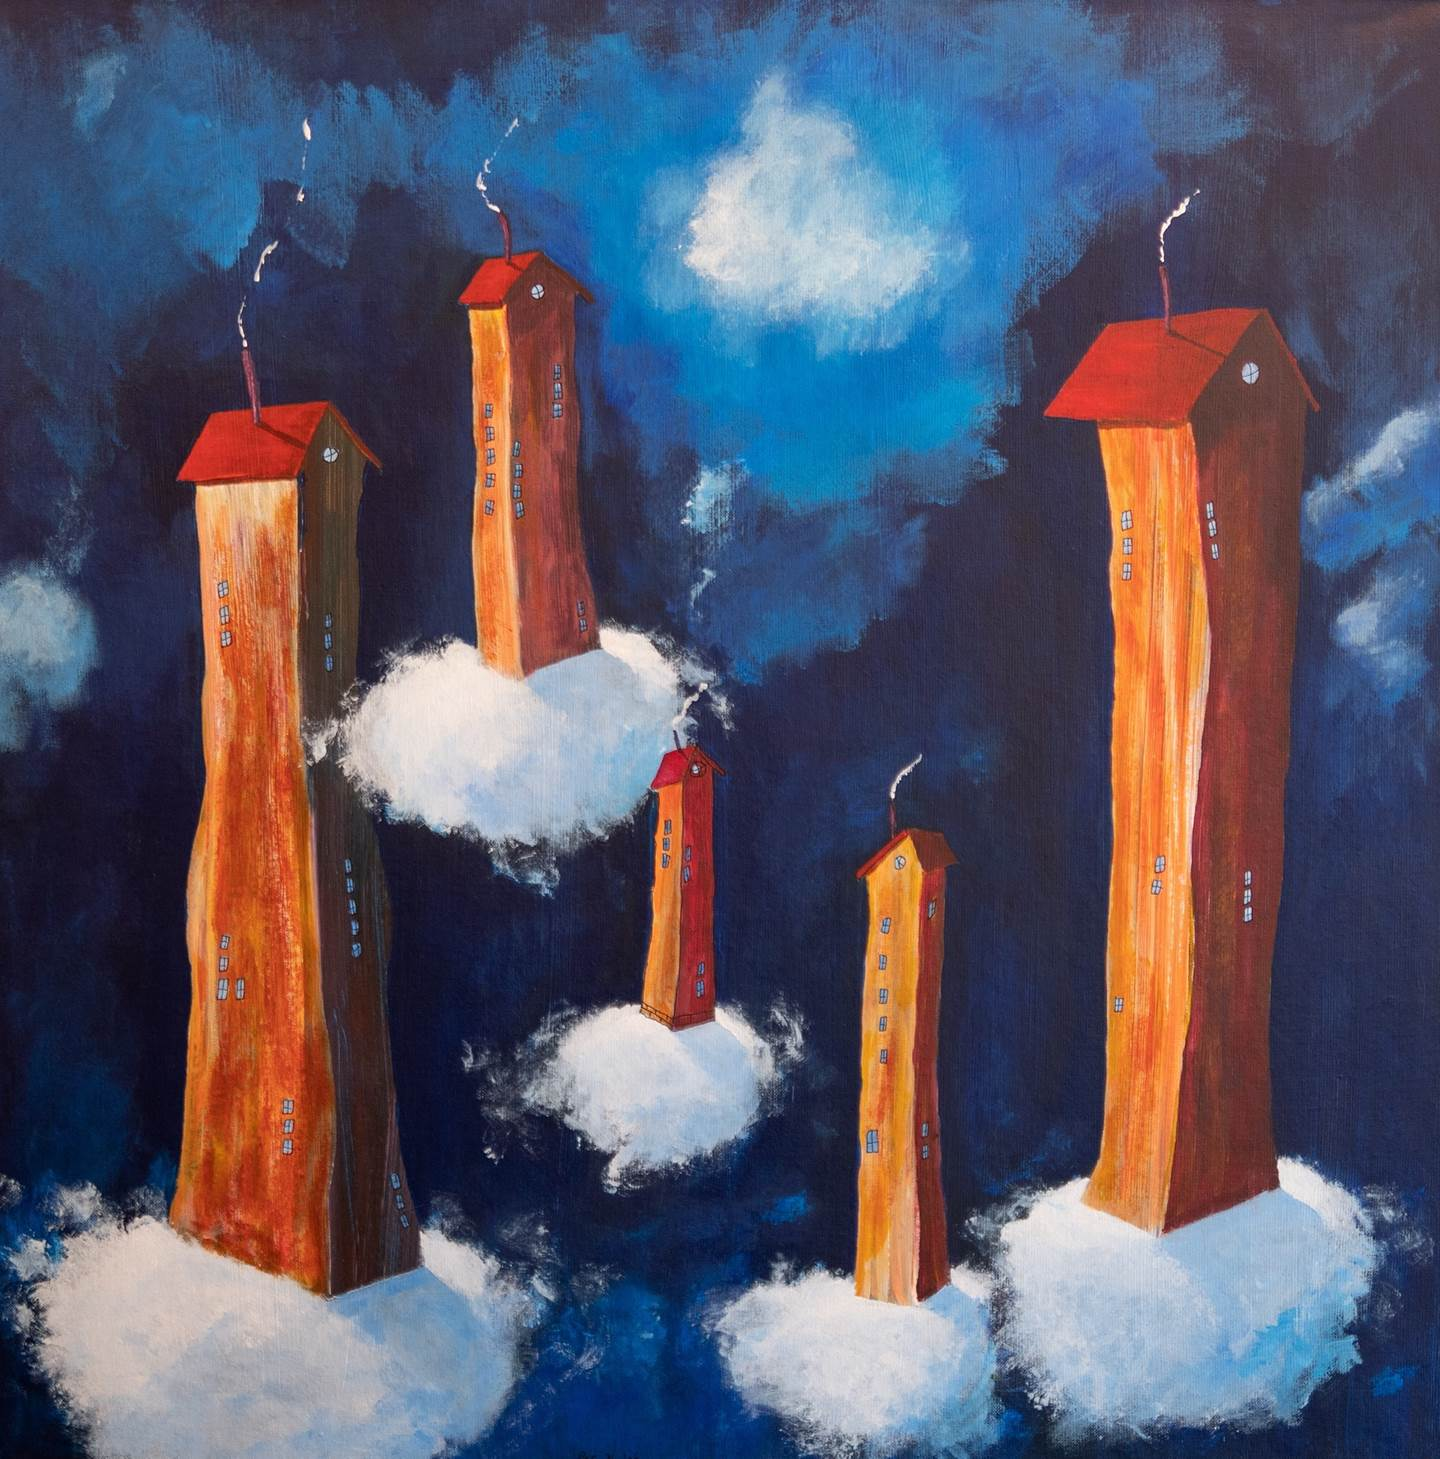 Electric clouds heading to Skellefteå city!, original Places Acrylic Painting by Per Nylén